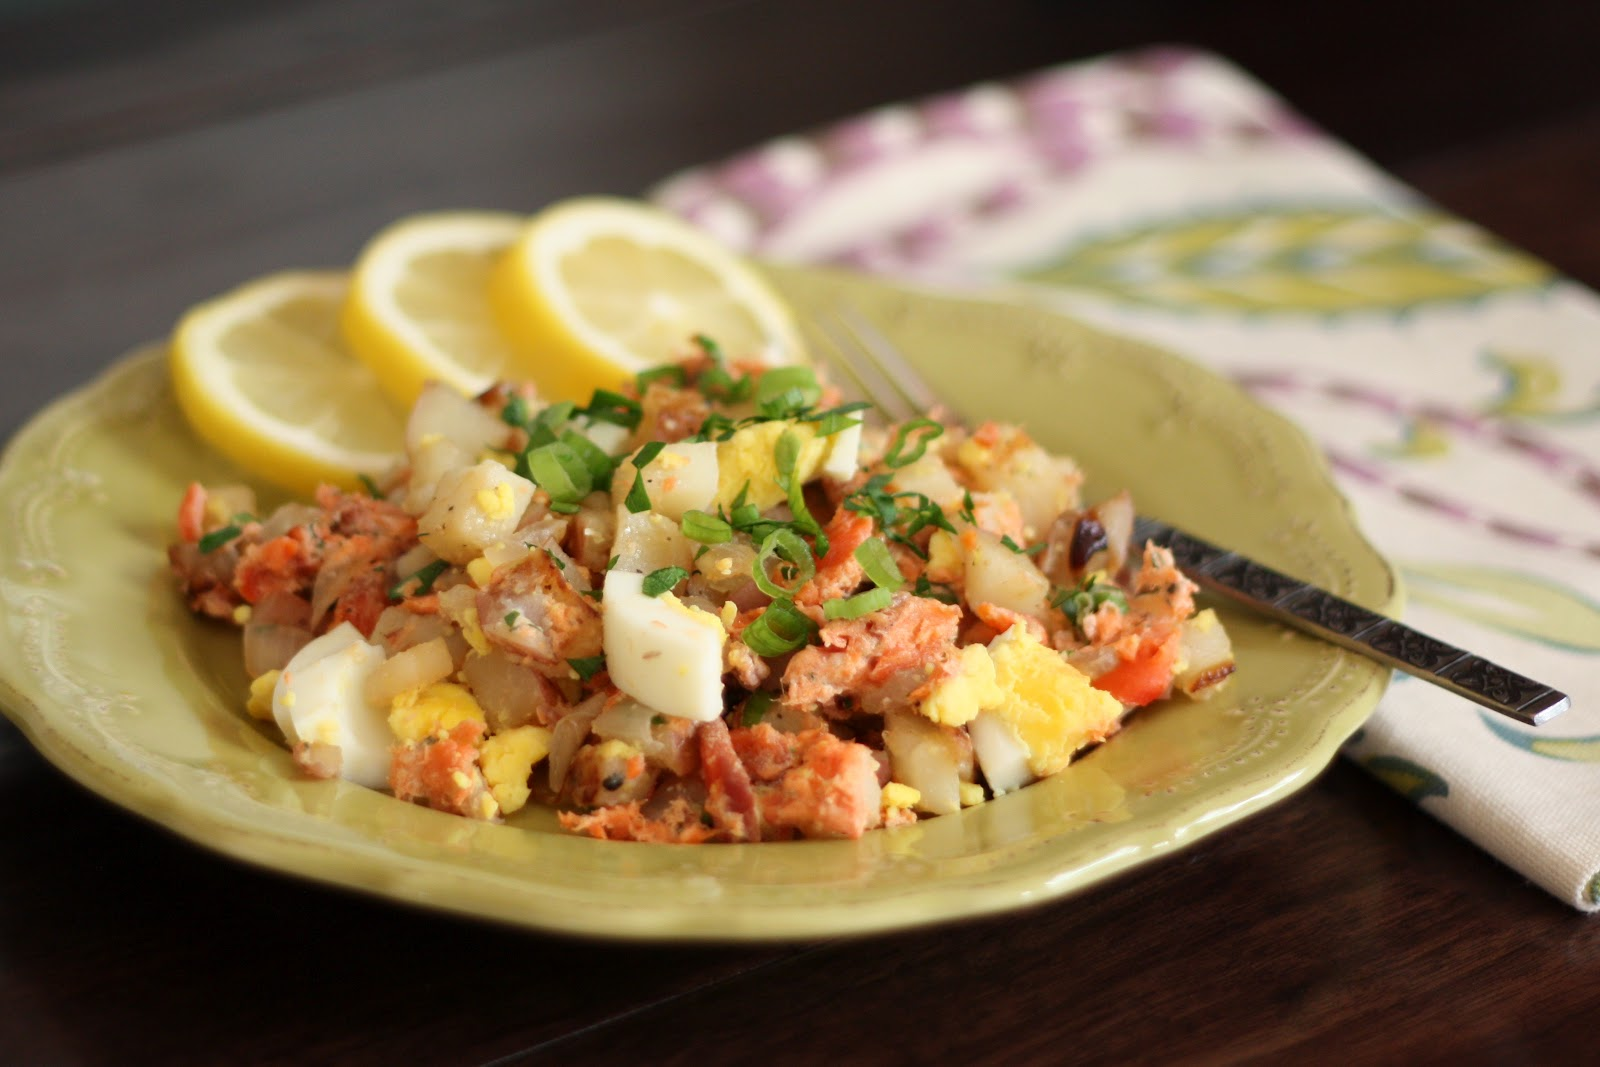 Barefeet In The Kitchen: Smoked Salmon and Red Potato Hash